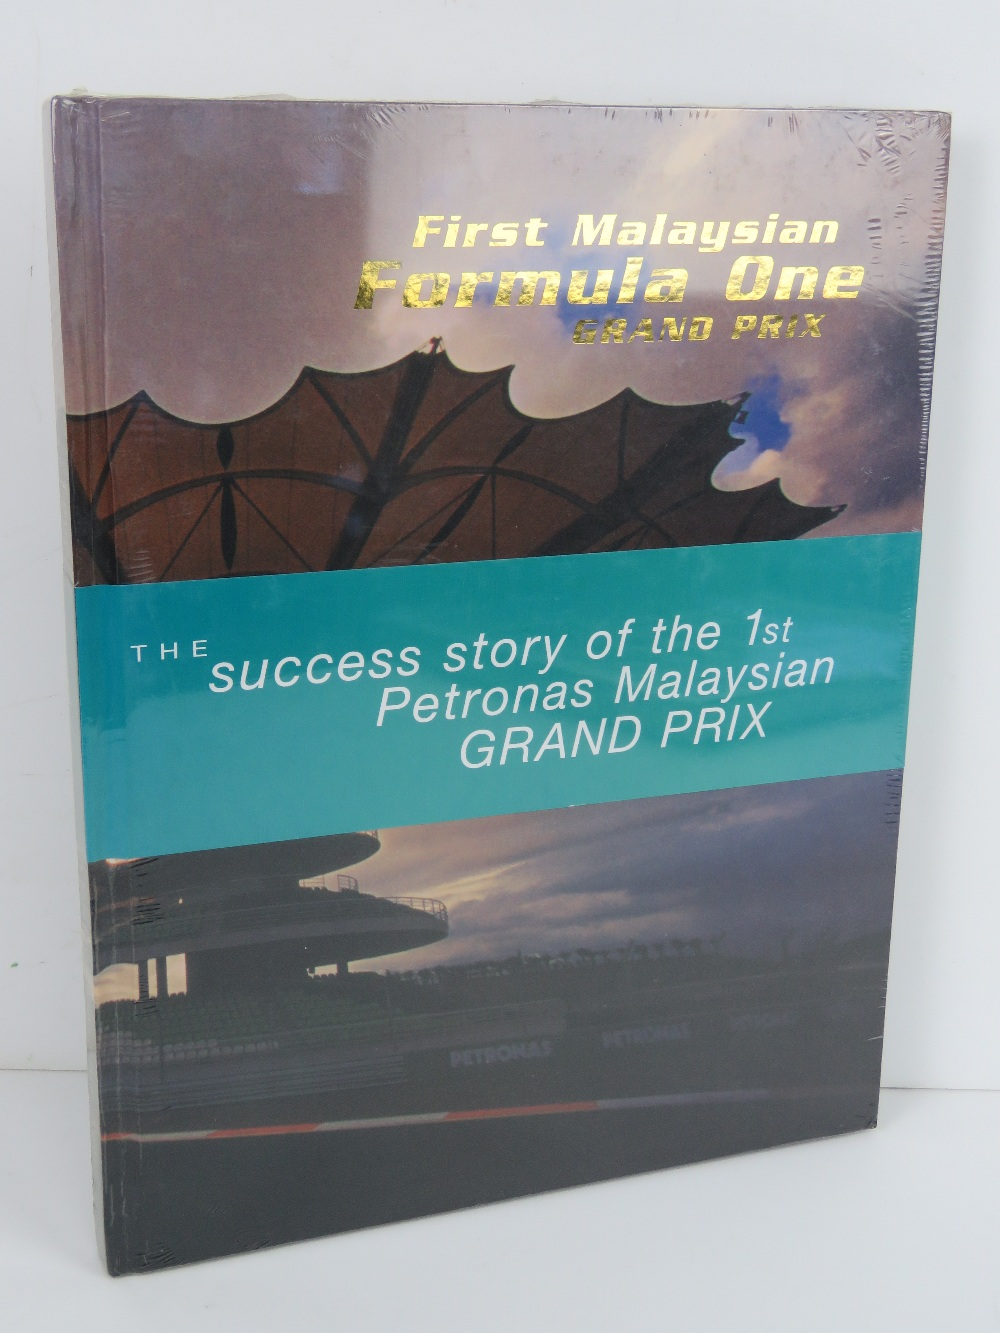 The Success Story of the 1st Petronas Malaysian Grand Prix. Hardback book. In plastic wrap.